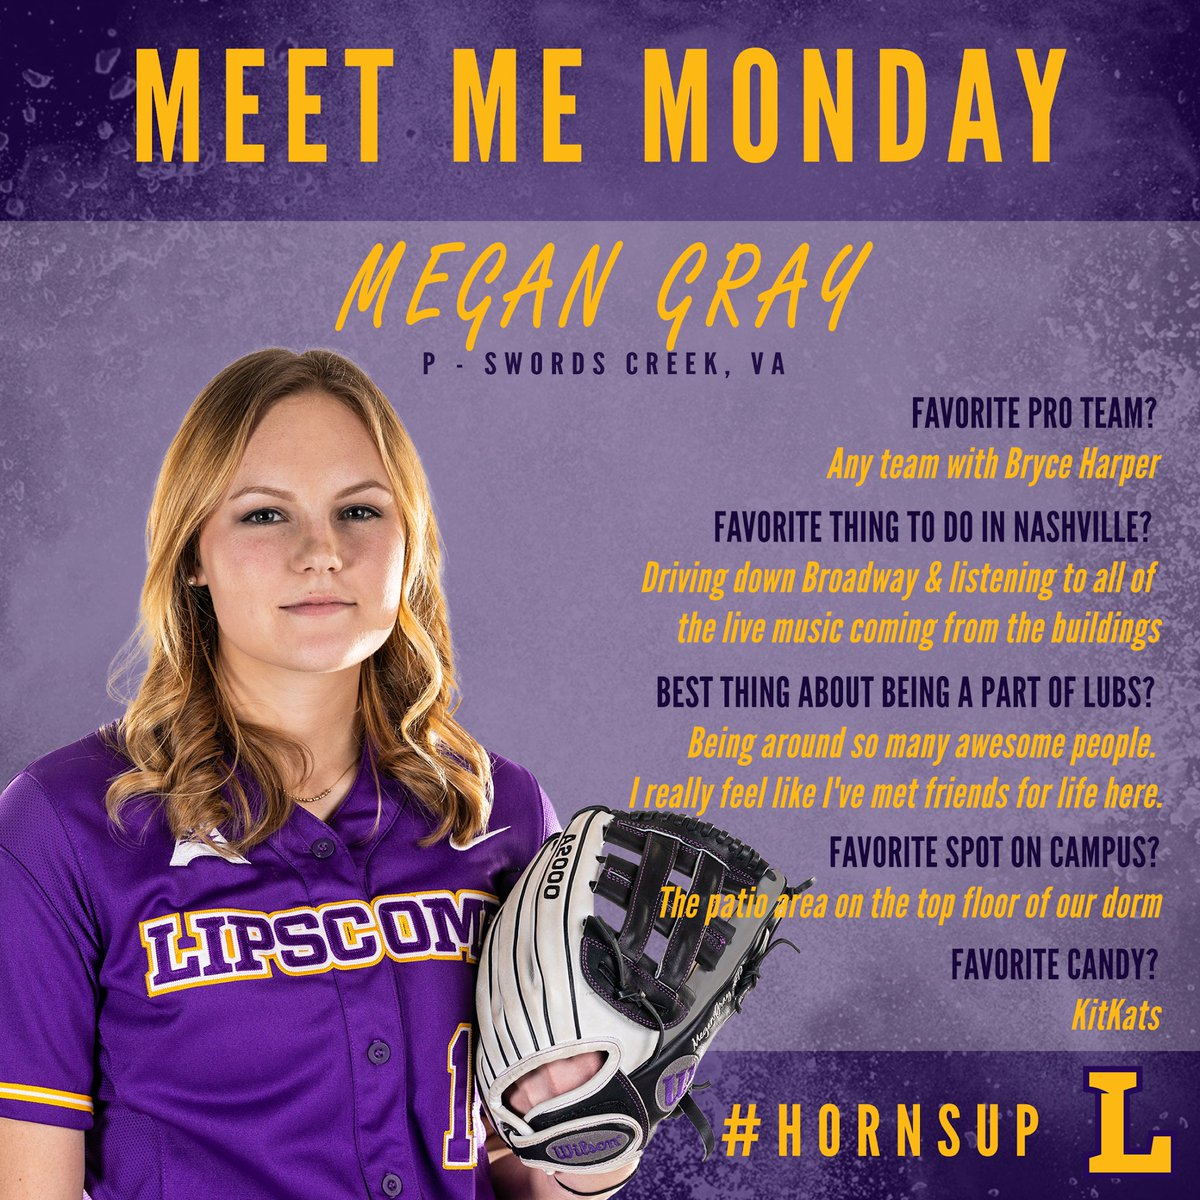 It's getting late, but it's still #MeetMeMonday! Today it's time to meet JR RHP @megan_bryce1! She may be nonchalant & mellow, but she's the team's best hacky sacker! PS- she also threw her 1st career no-hitter earlier this yr! Come catch her & #LUBS tmrw vs APSU @ 5pm! #PUNCH 🤘🏼